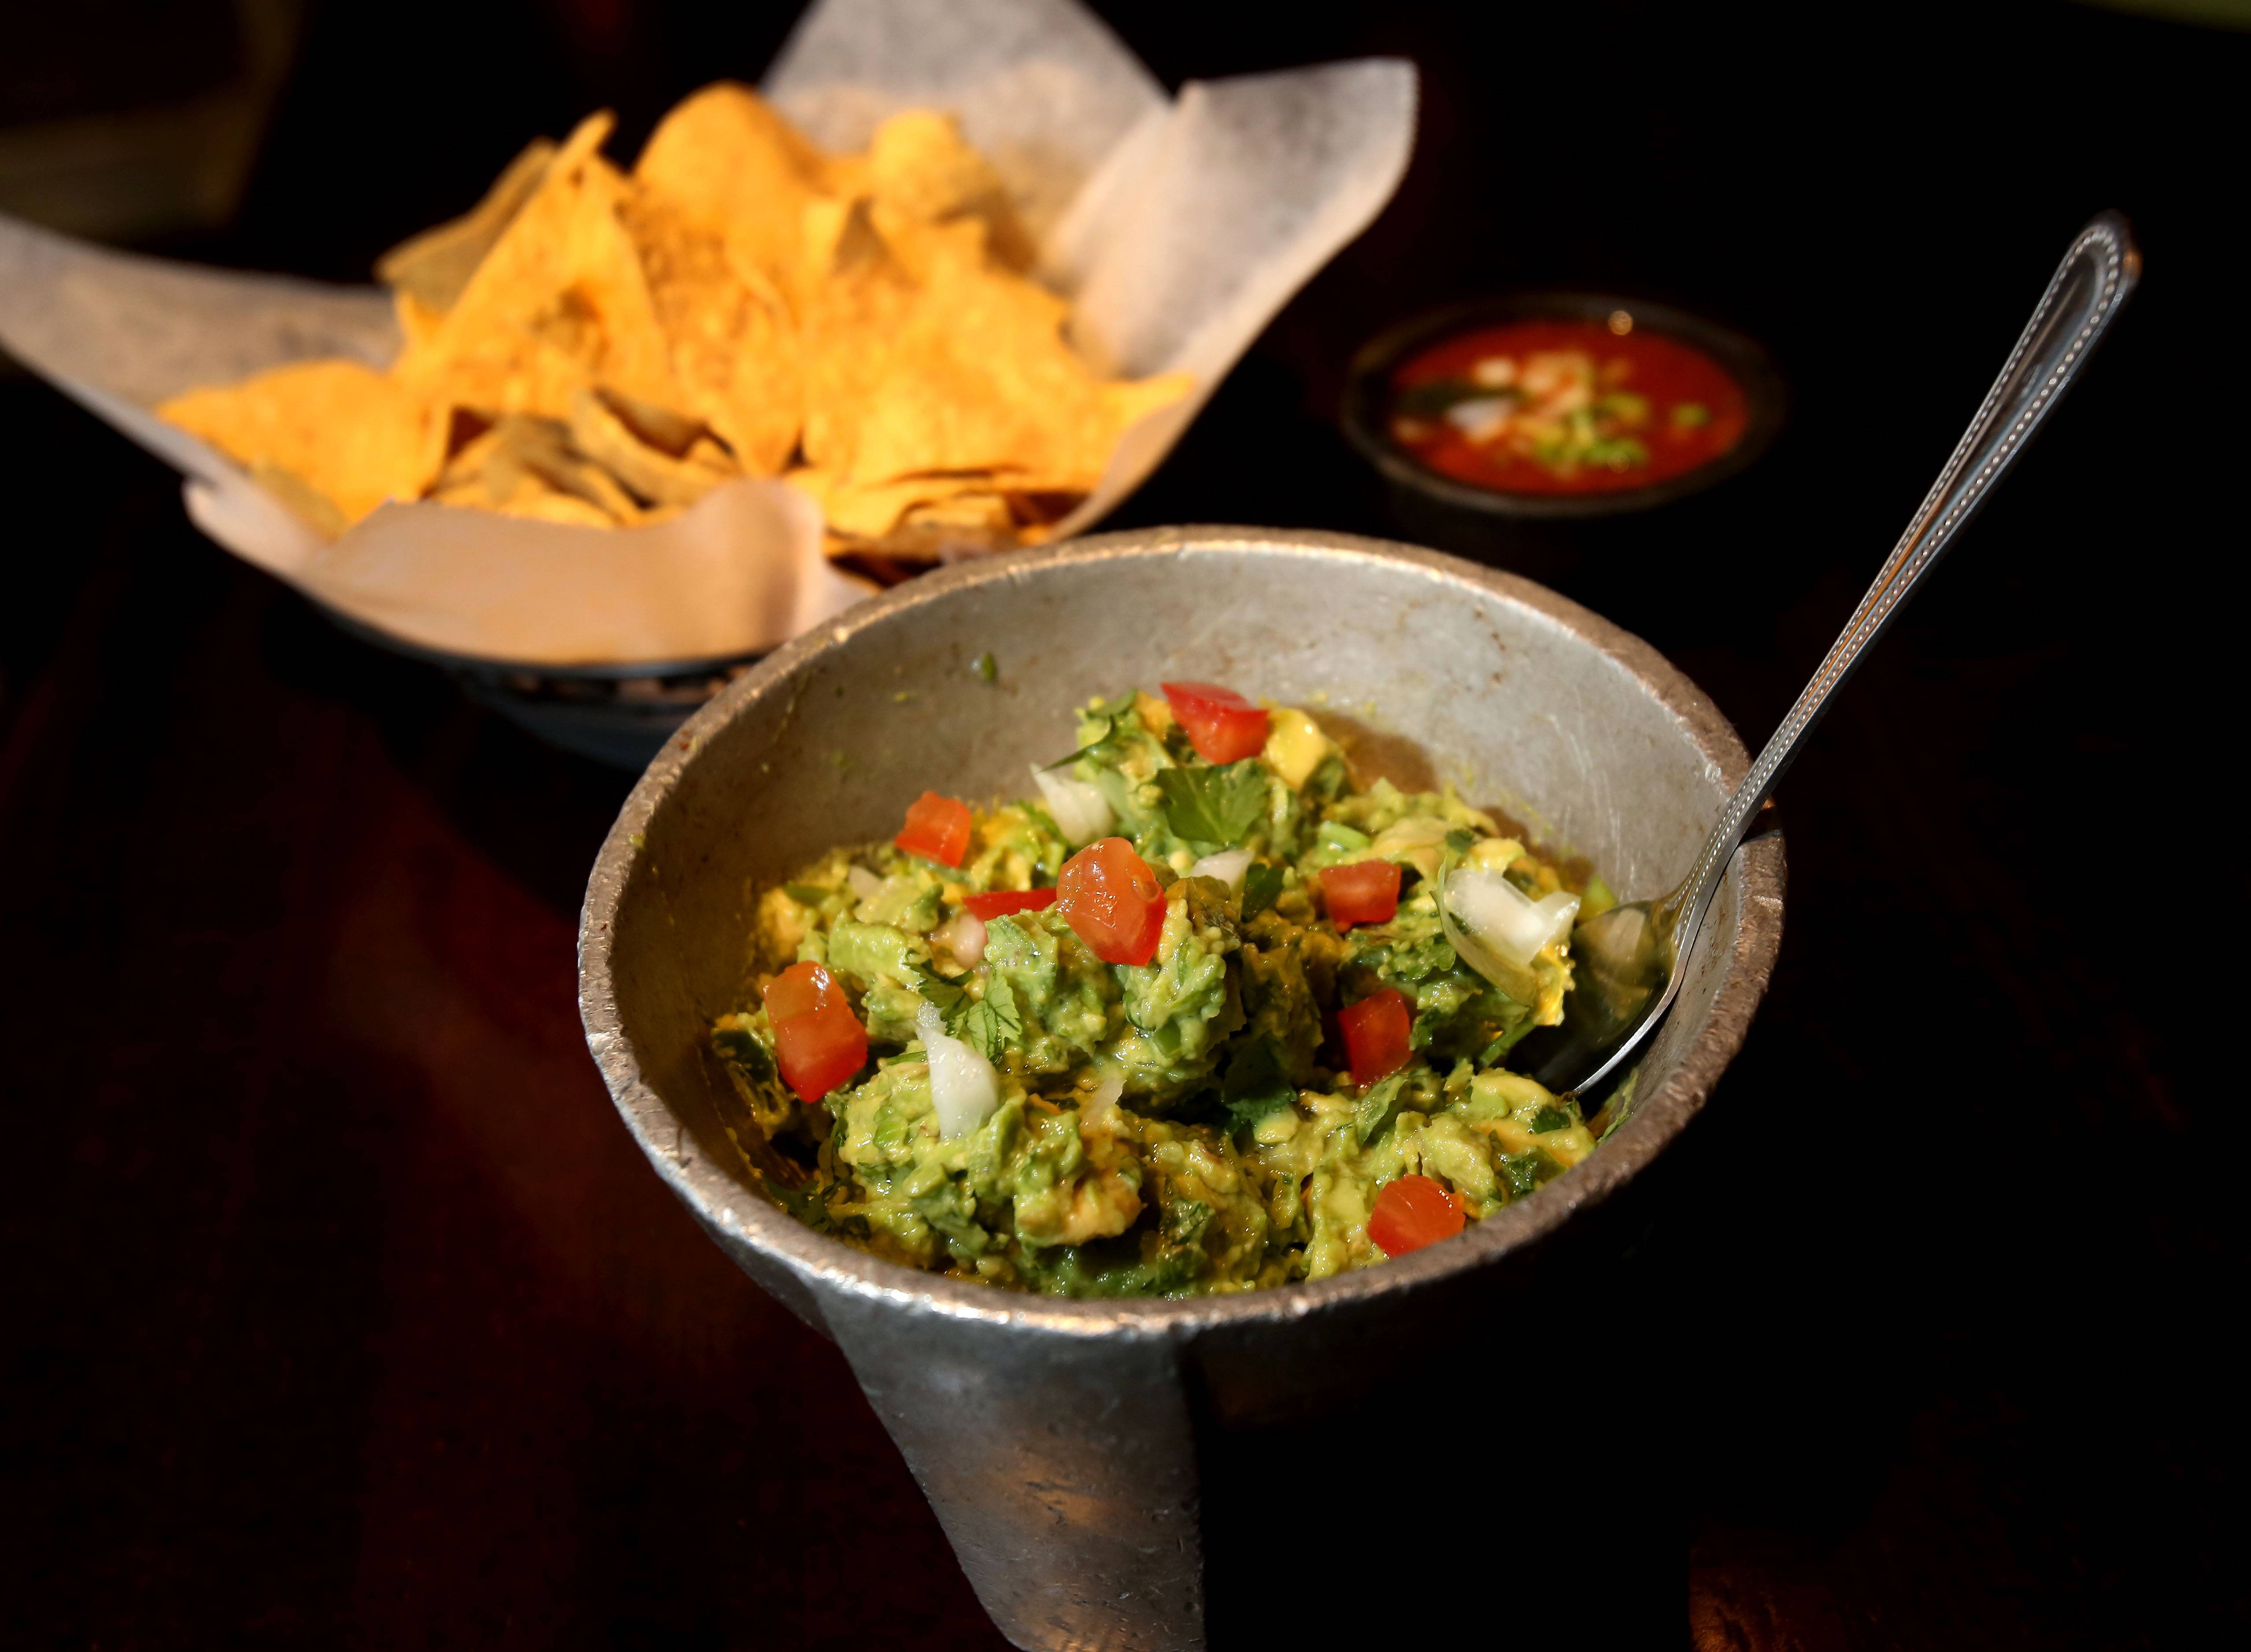 House guacamole is made to order at Zapatista restaurant in Naperville.